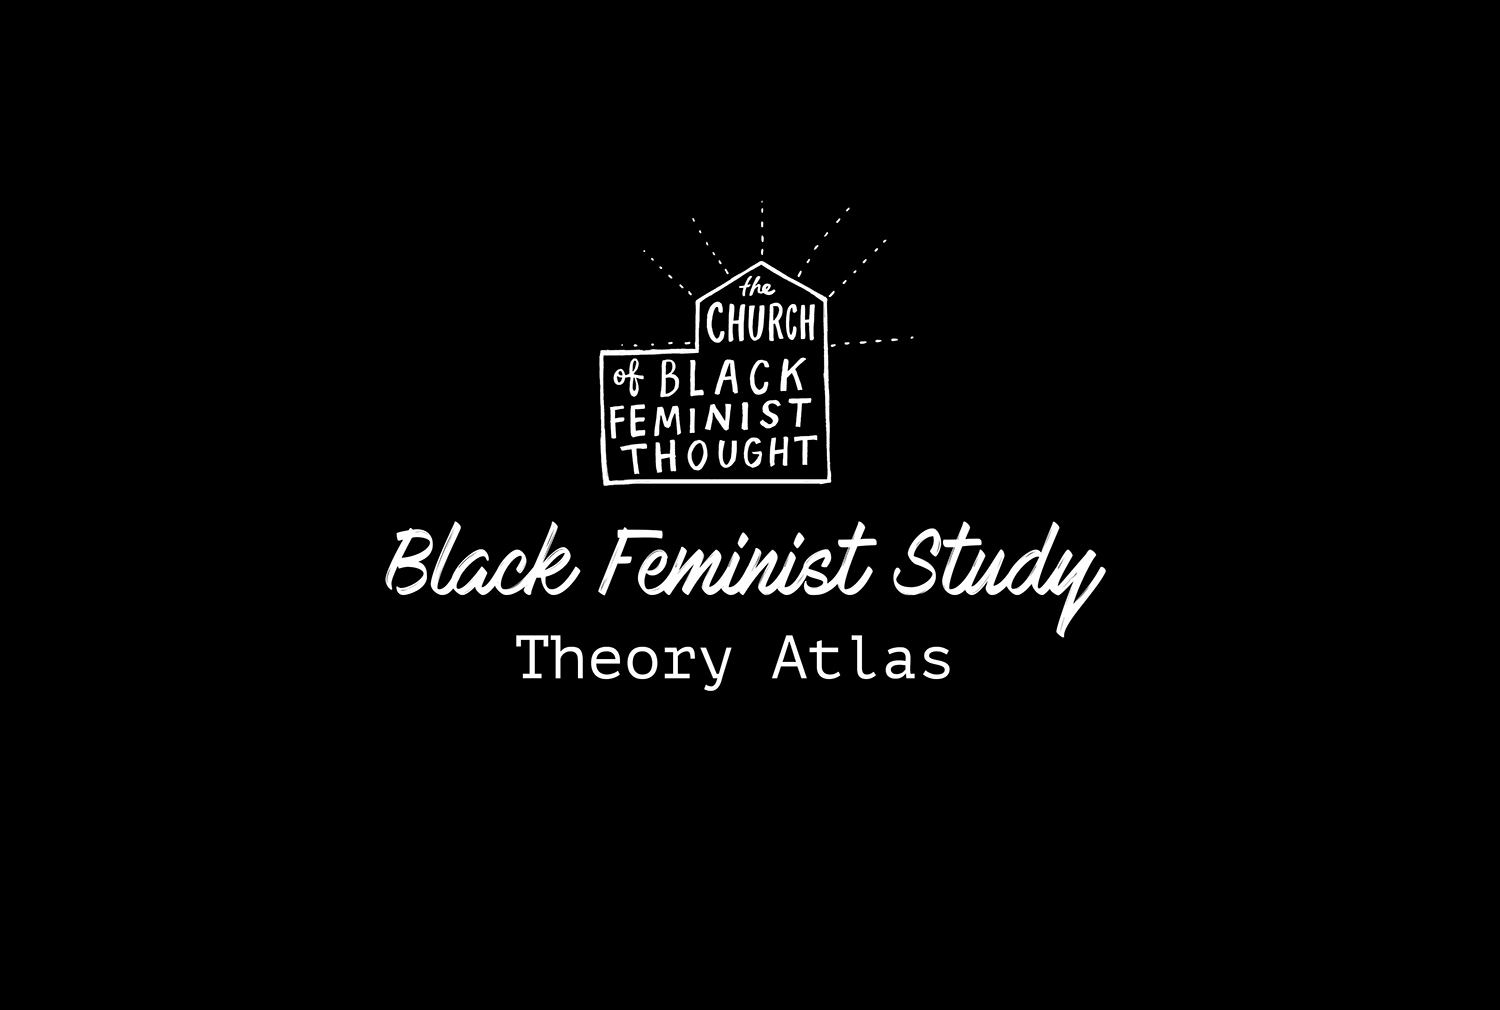 The Black Feminist Study Theory Atlas